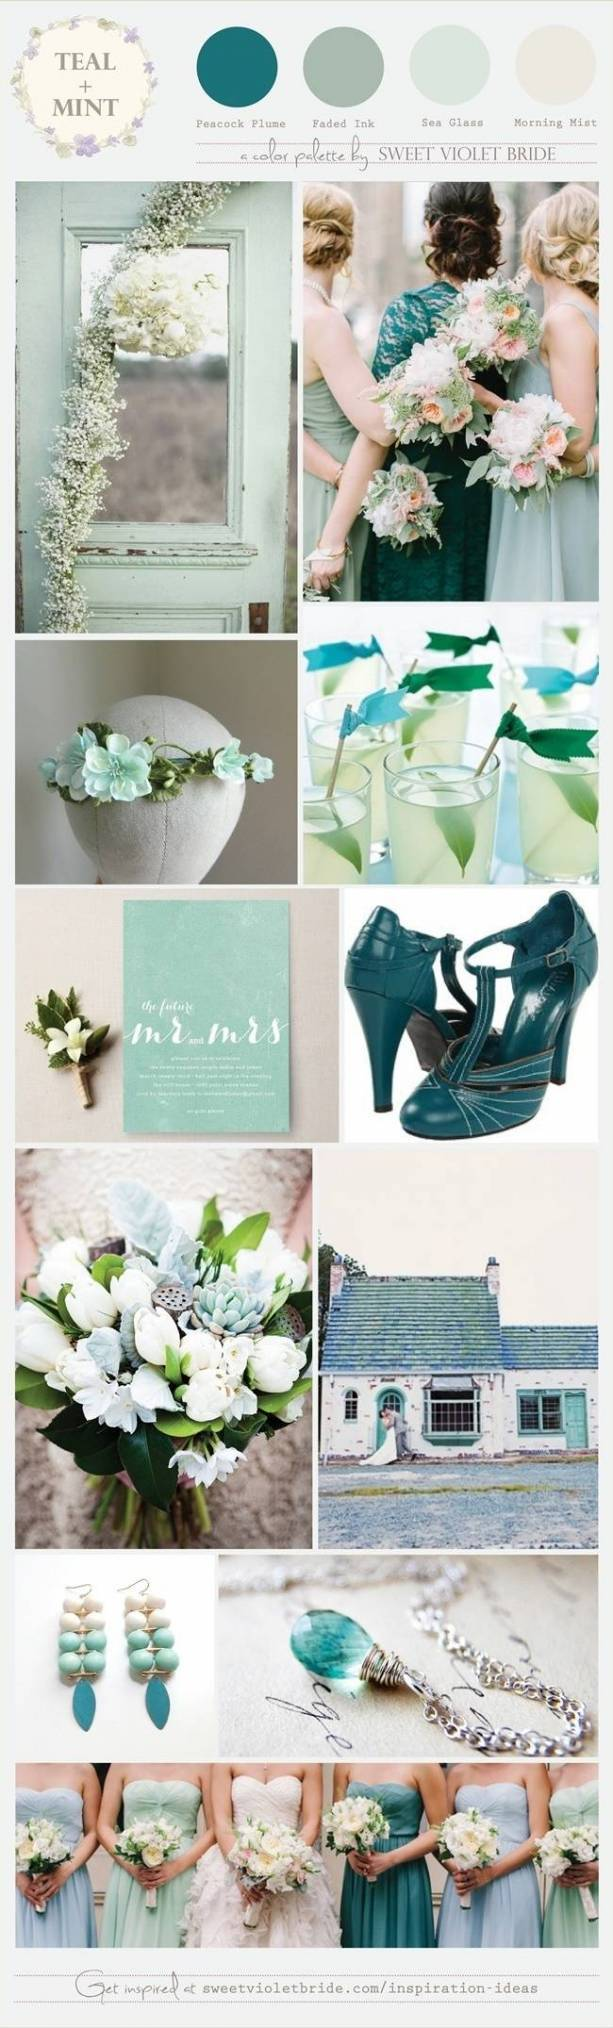 teal and mint wedding theme